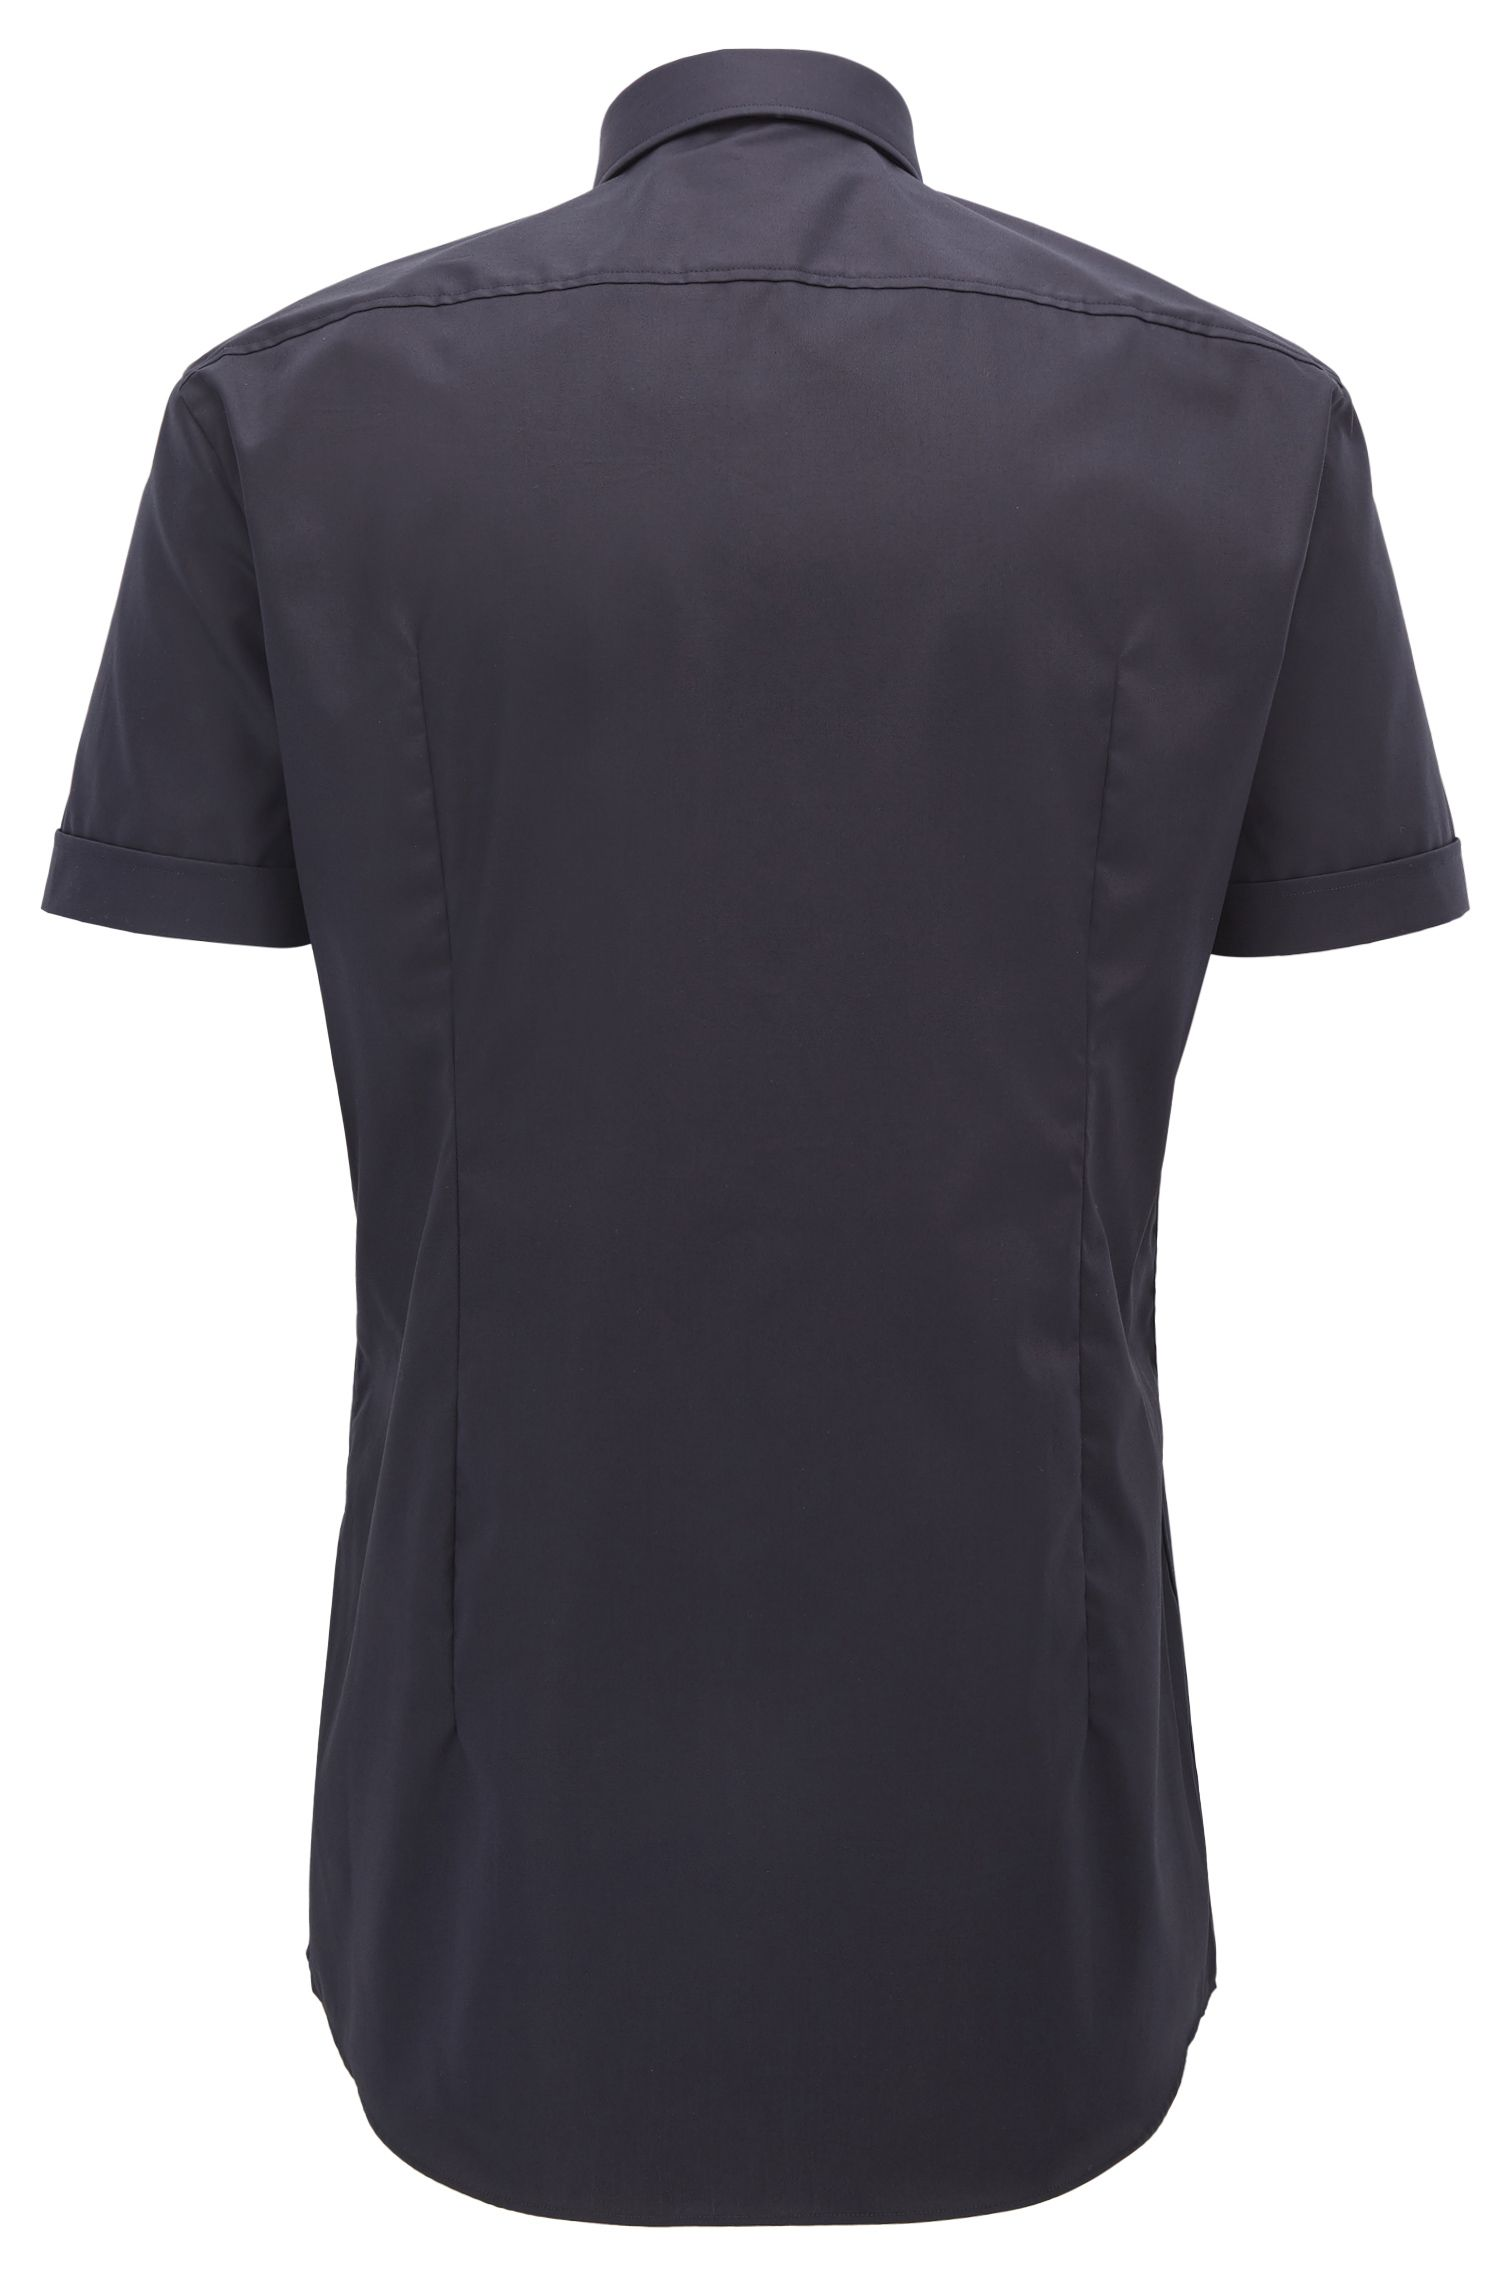 Short-sleeved cotton shirt in a slim fit